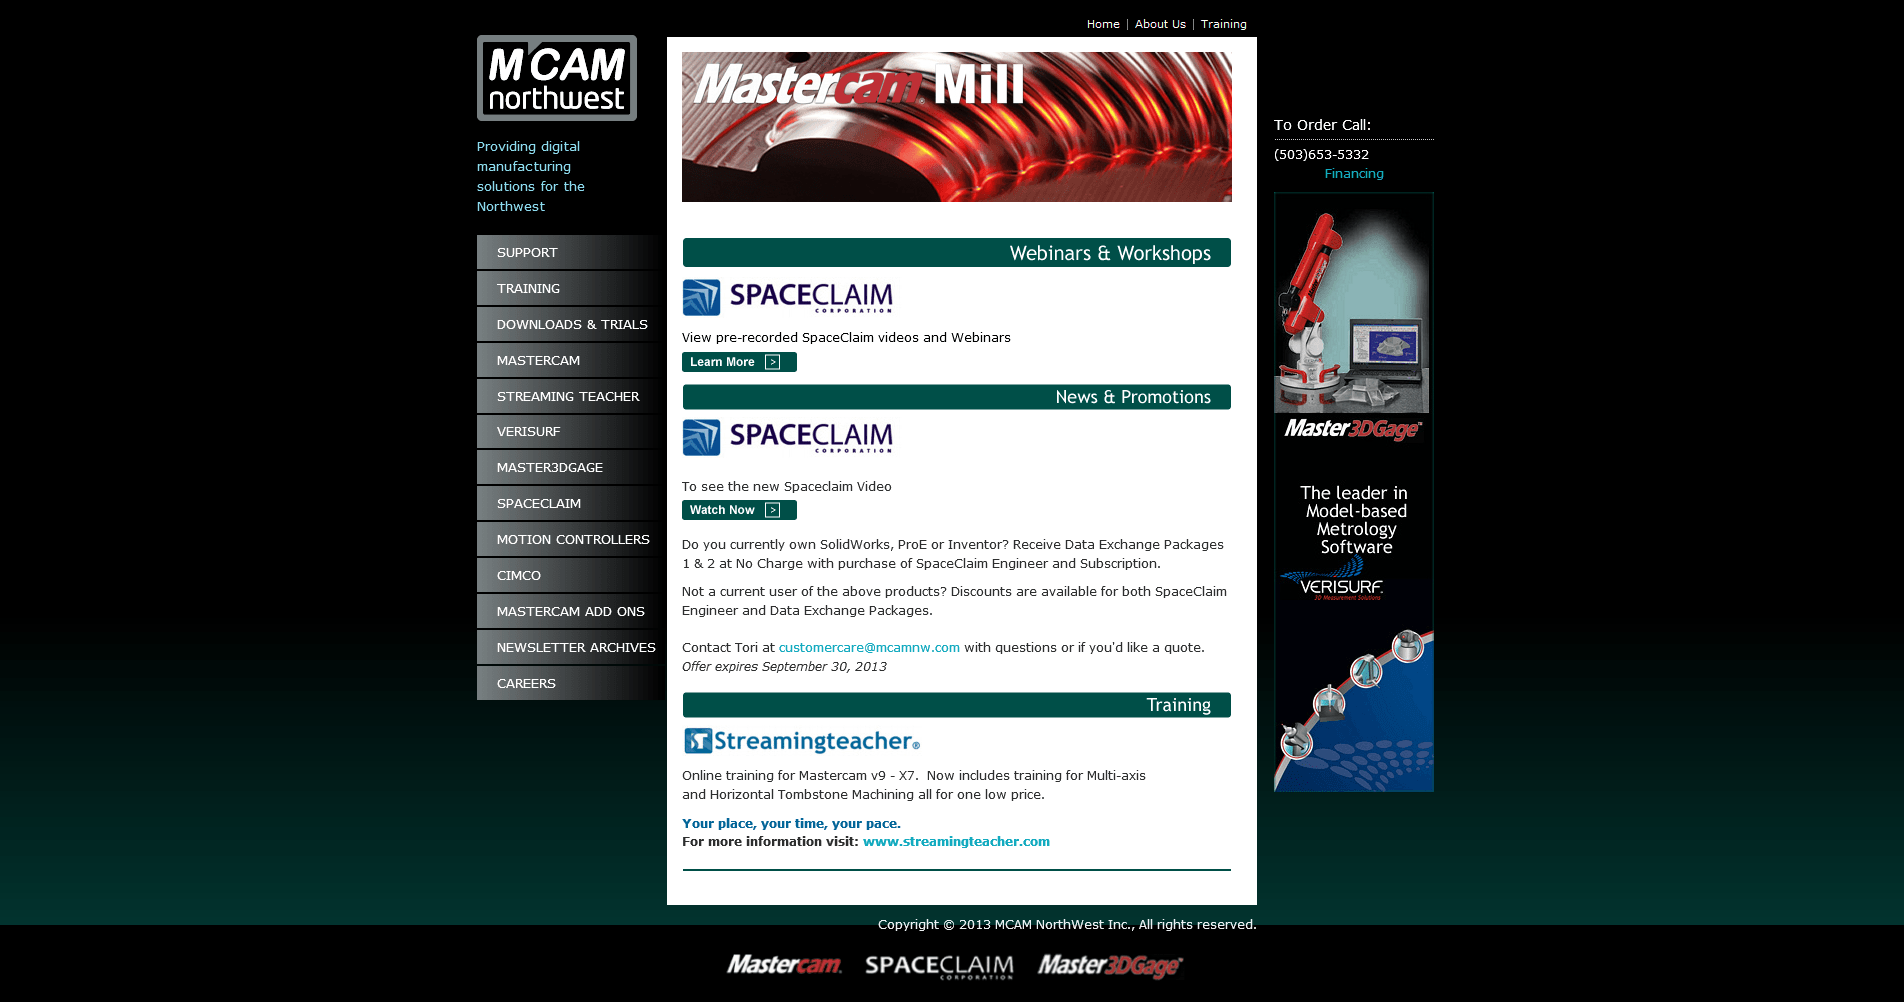 MCAM Northwest home page